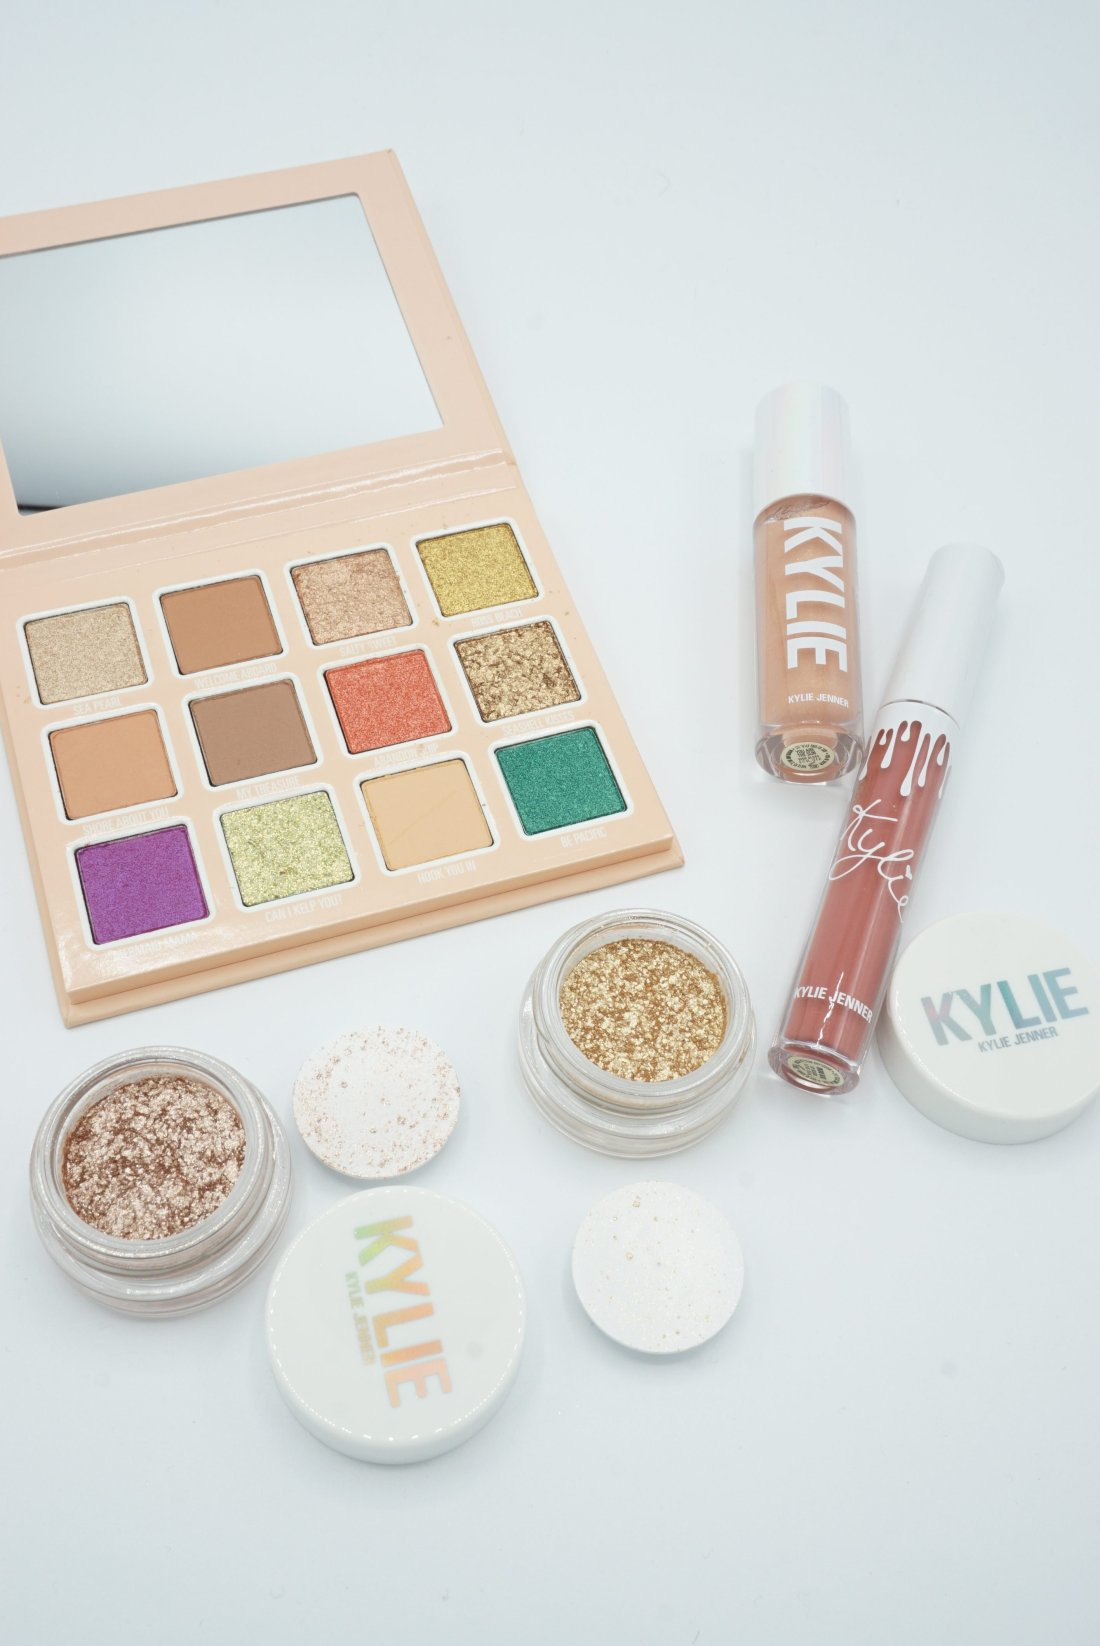 Kylie Cosmetics Summer 2019 Collection | Review